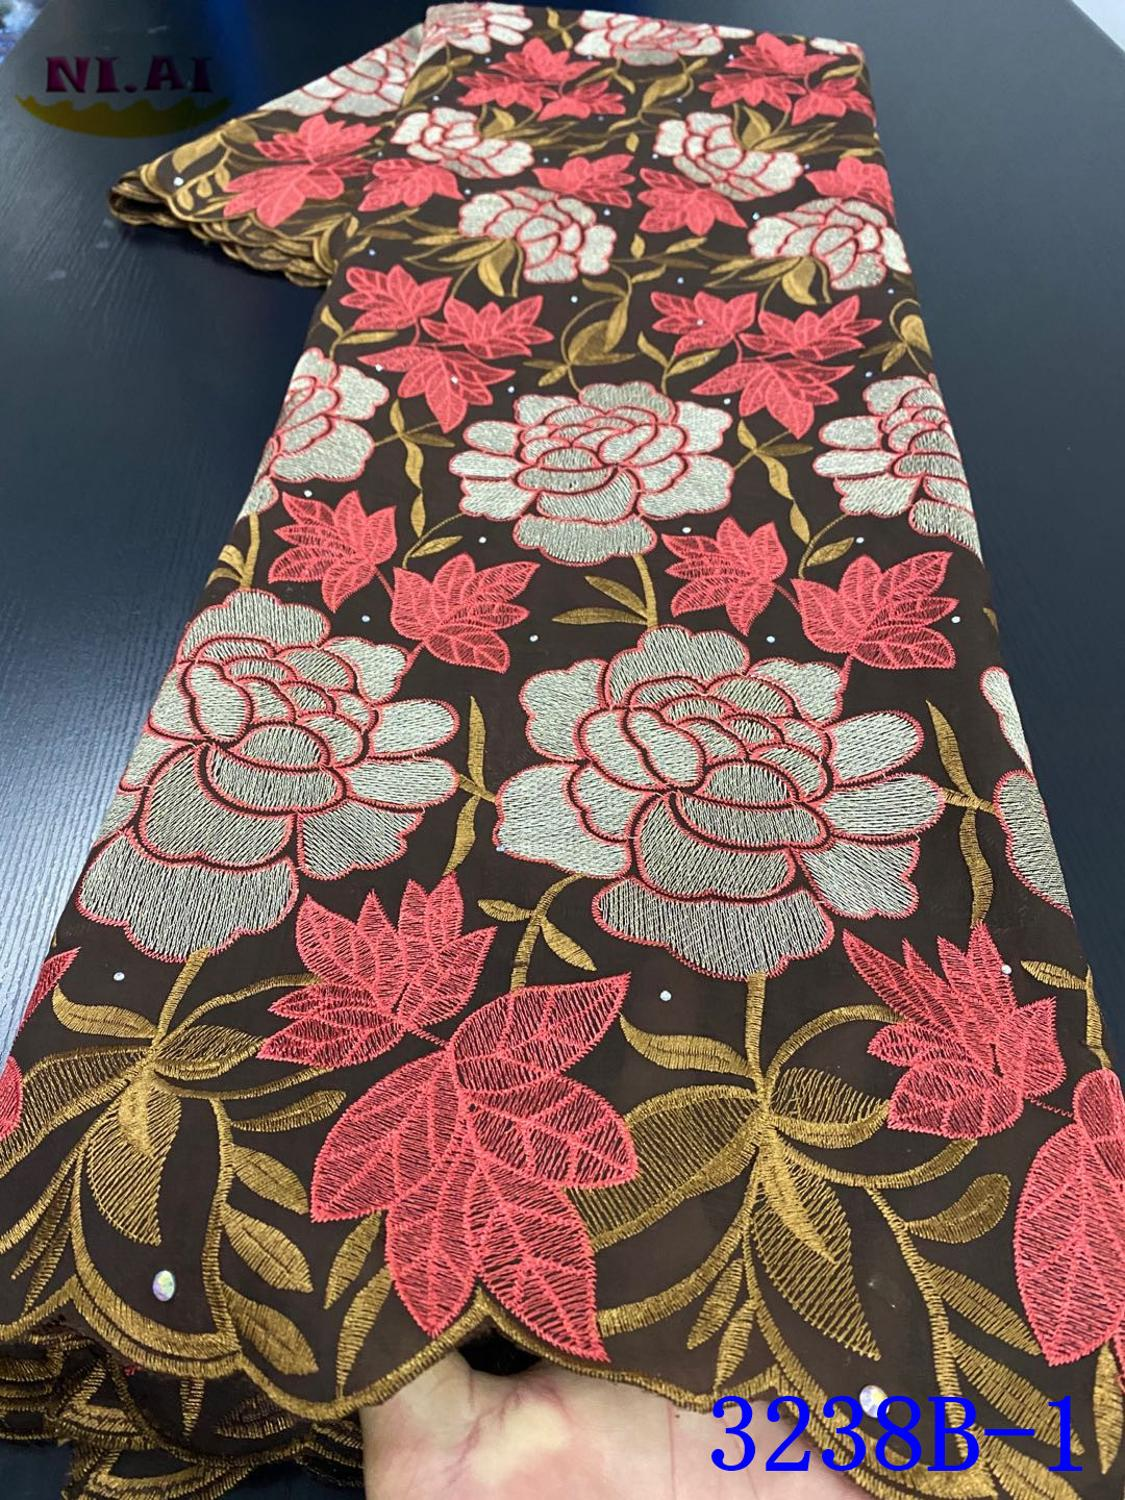 NIAI African Lace Fabric 2020 High Quality Lace Swiss Voile Lace In Switzerland Nigerian Cotton Lace Fabric With Stone XY3238B-1